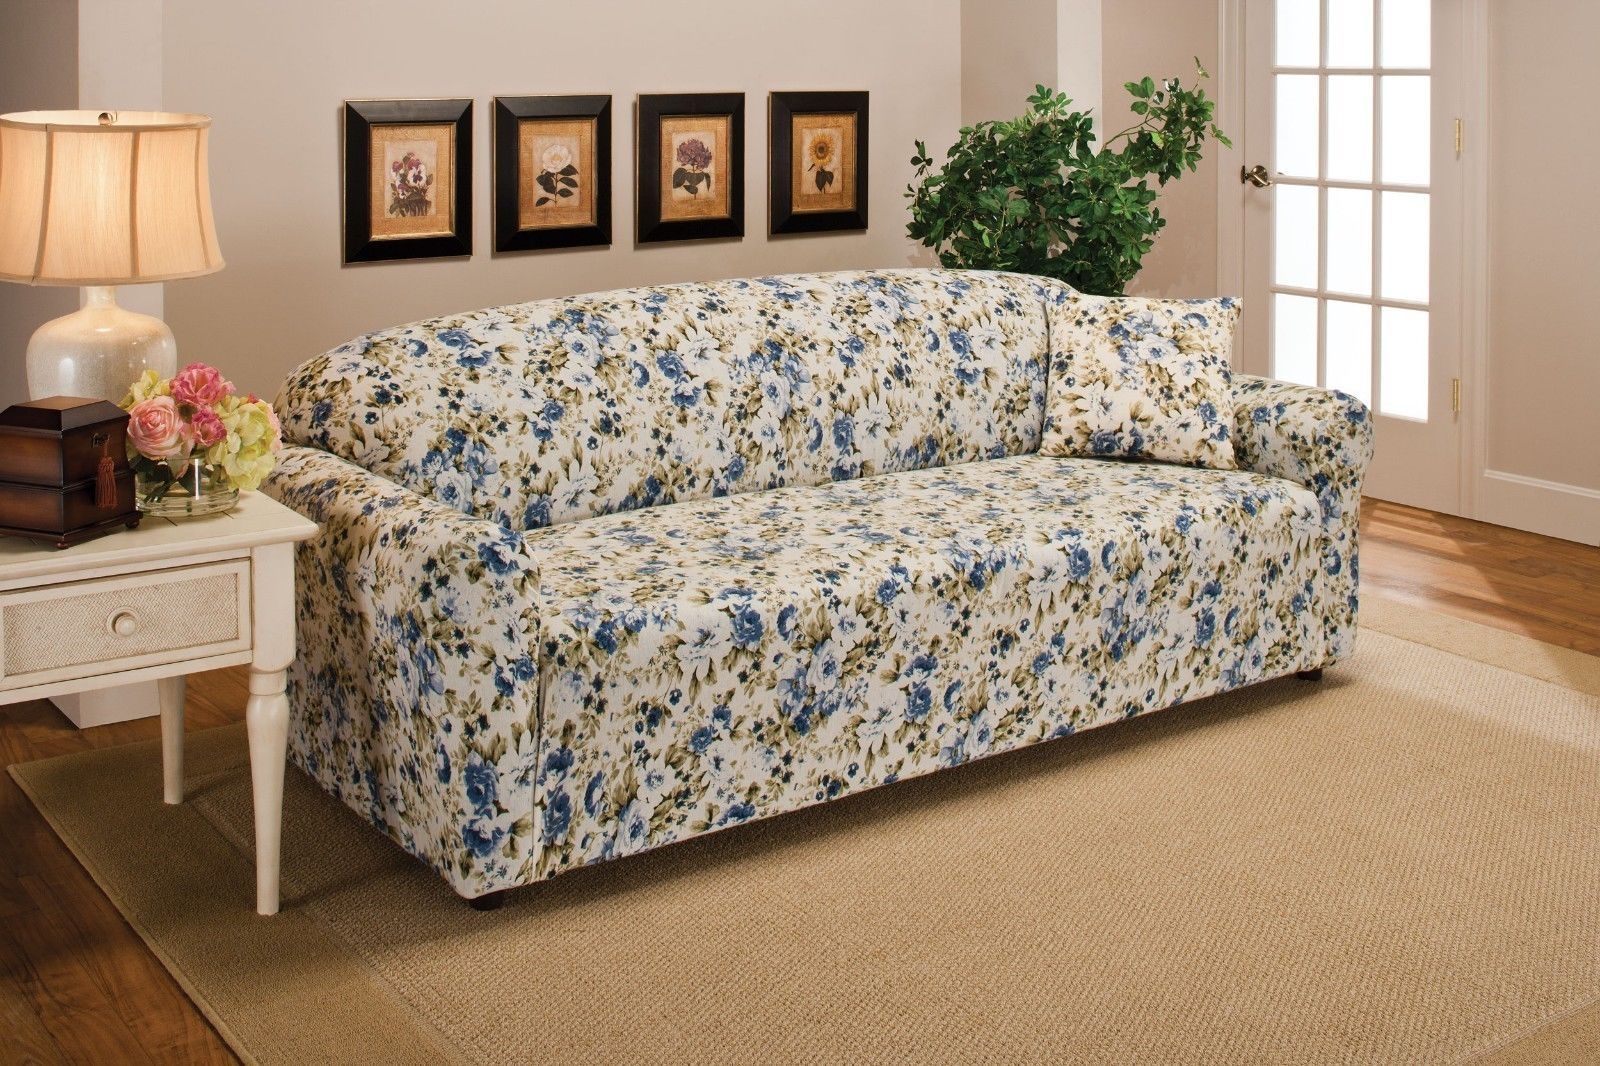 Blue Floral Flower Jersey Sofa Stretch Slipcover Couch Cover Chair Inside Chintz Sofa Covers (Image 2 of 15)